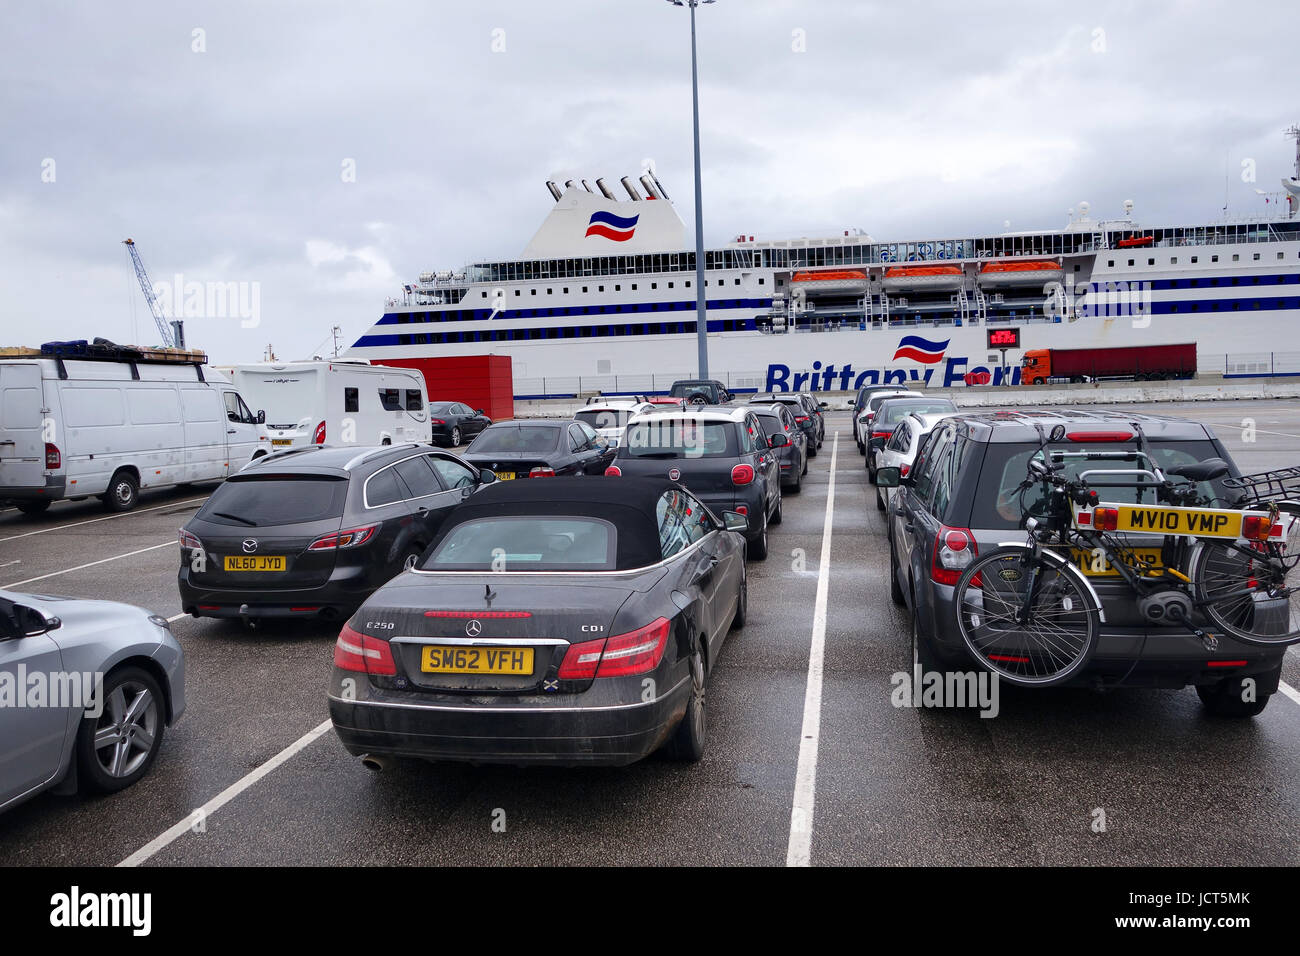 Vehicles Queueing Waiting To Board Brittany Ferries Cap Finistere